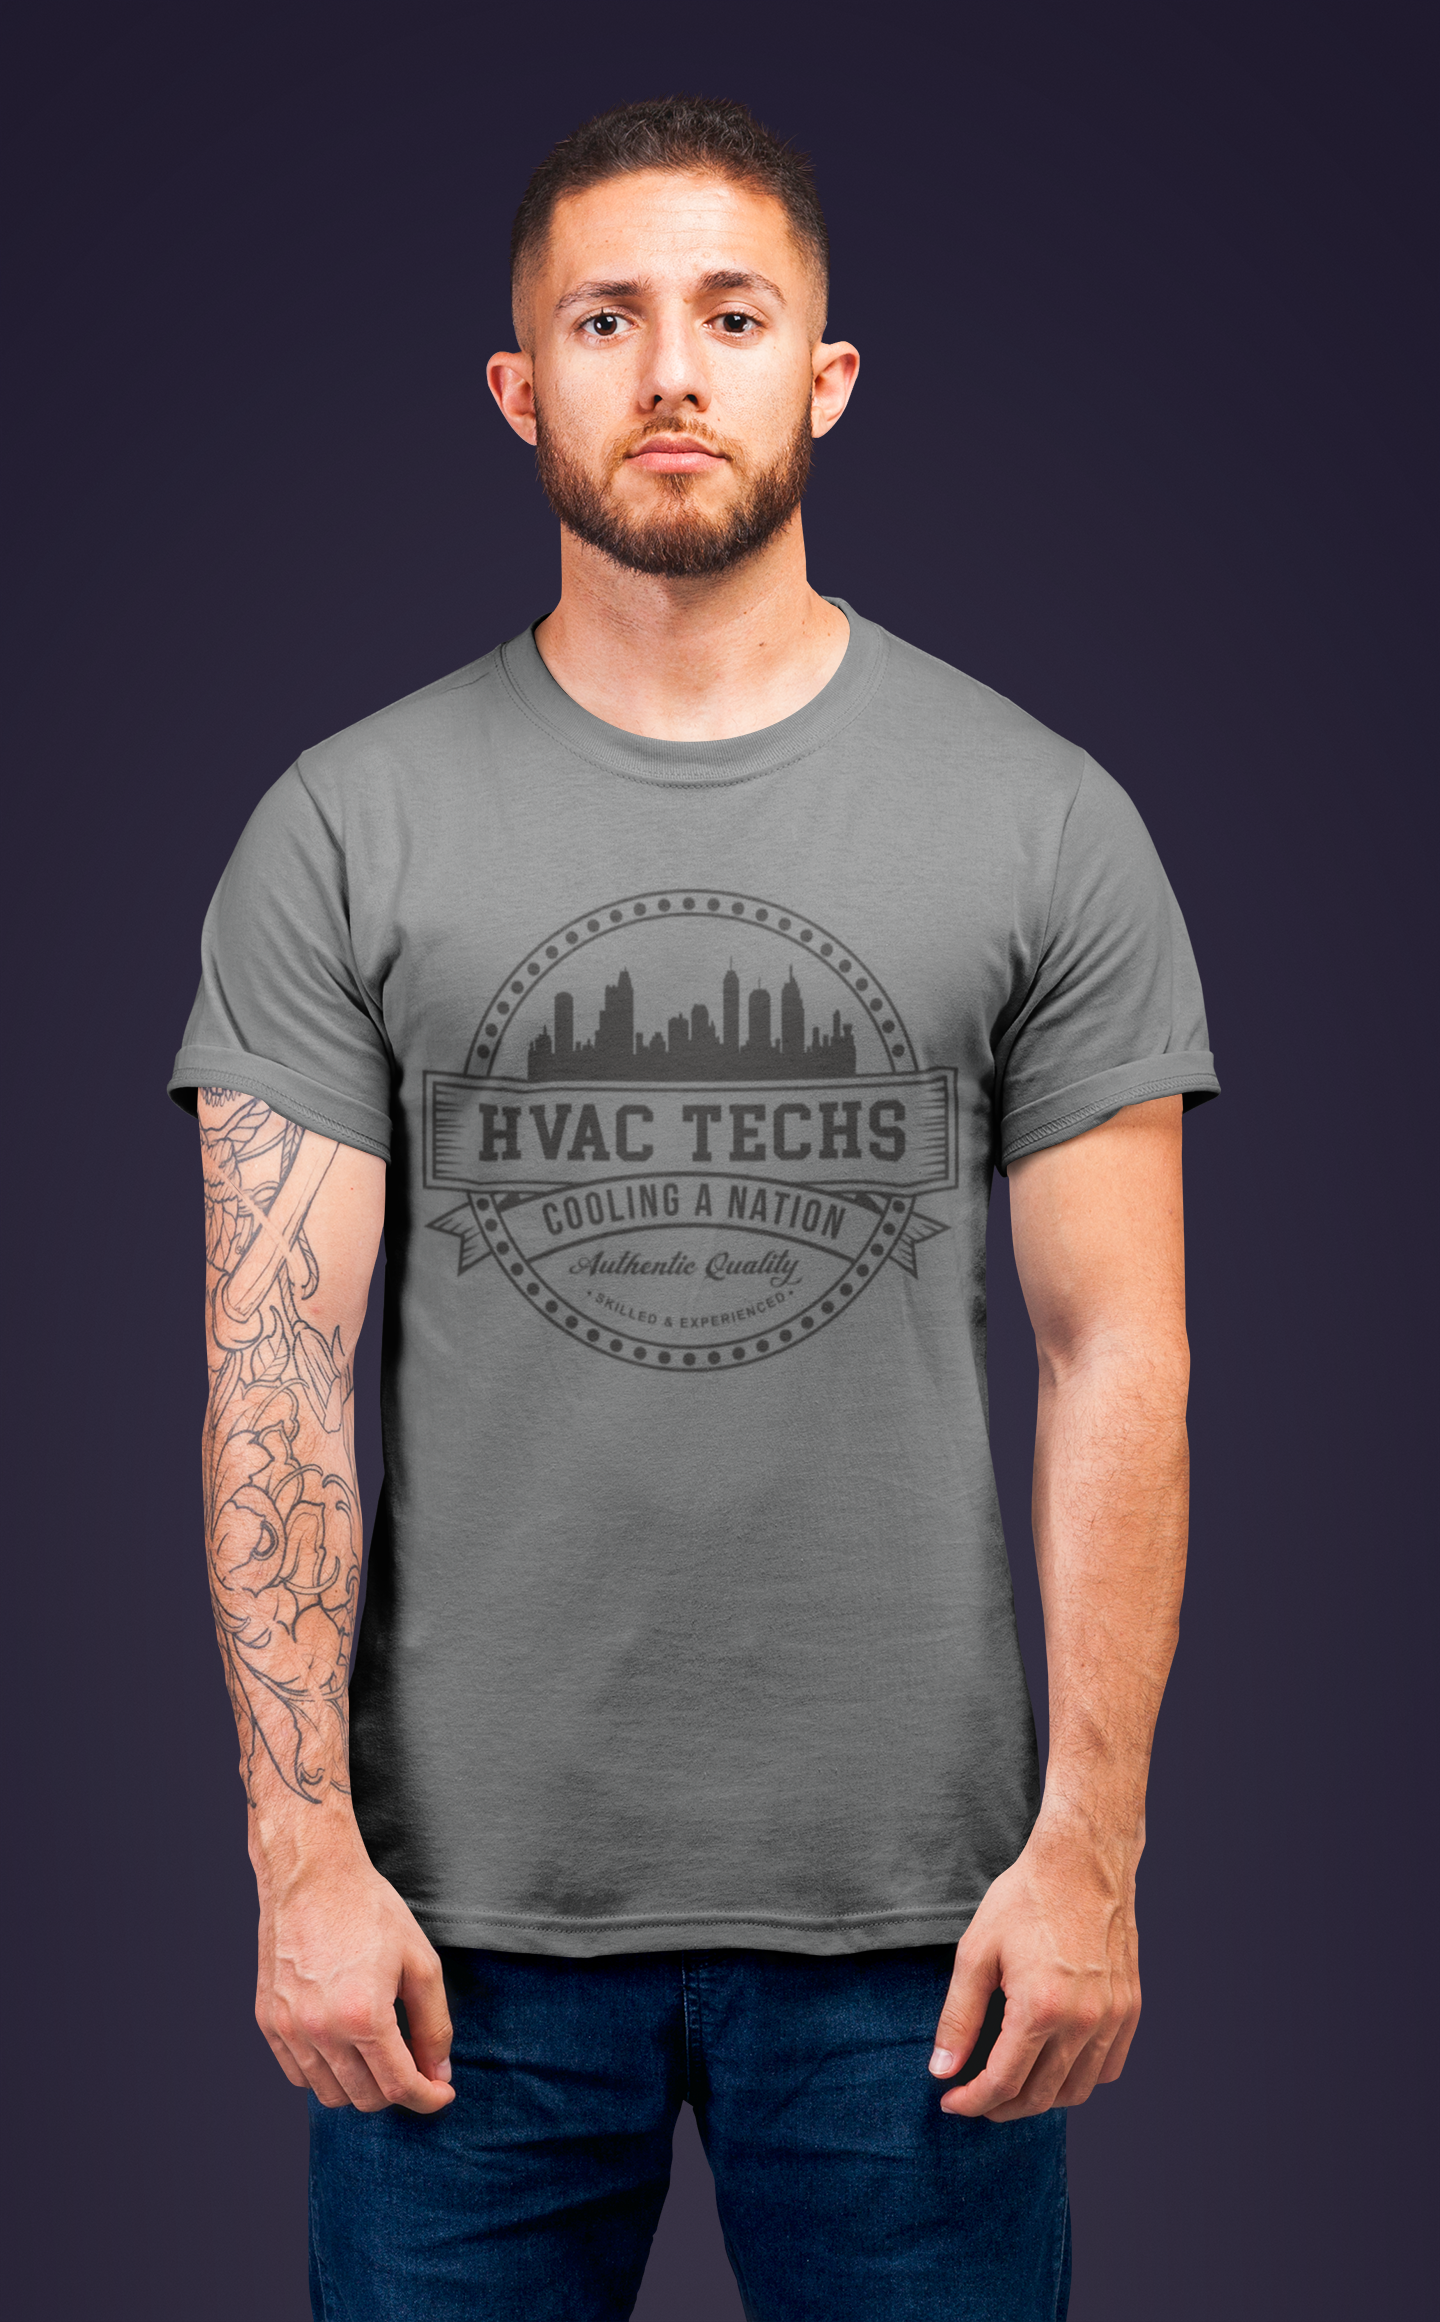 t-shirt-mockup-of-a-redhead-man-with-tattoos-standing-in-a-studio-22340.png